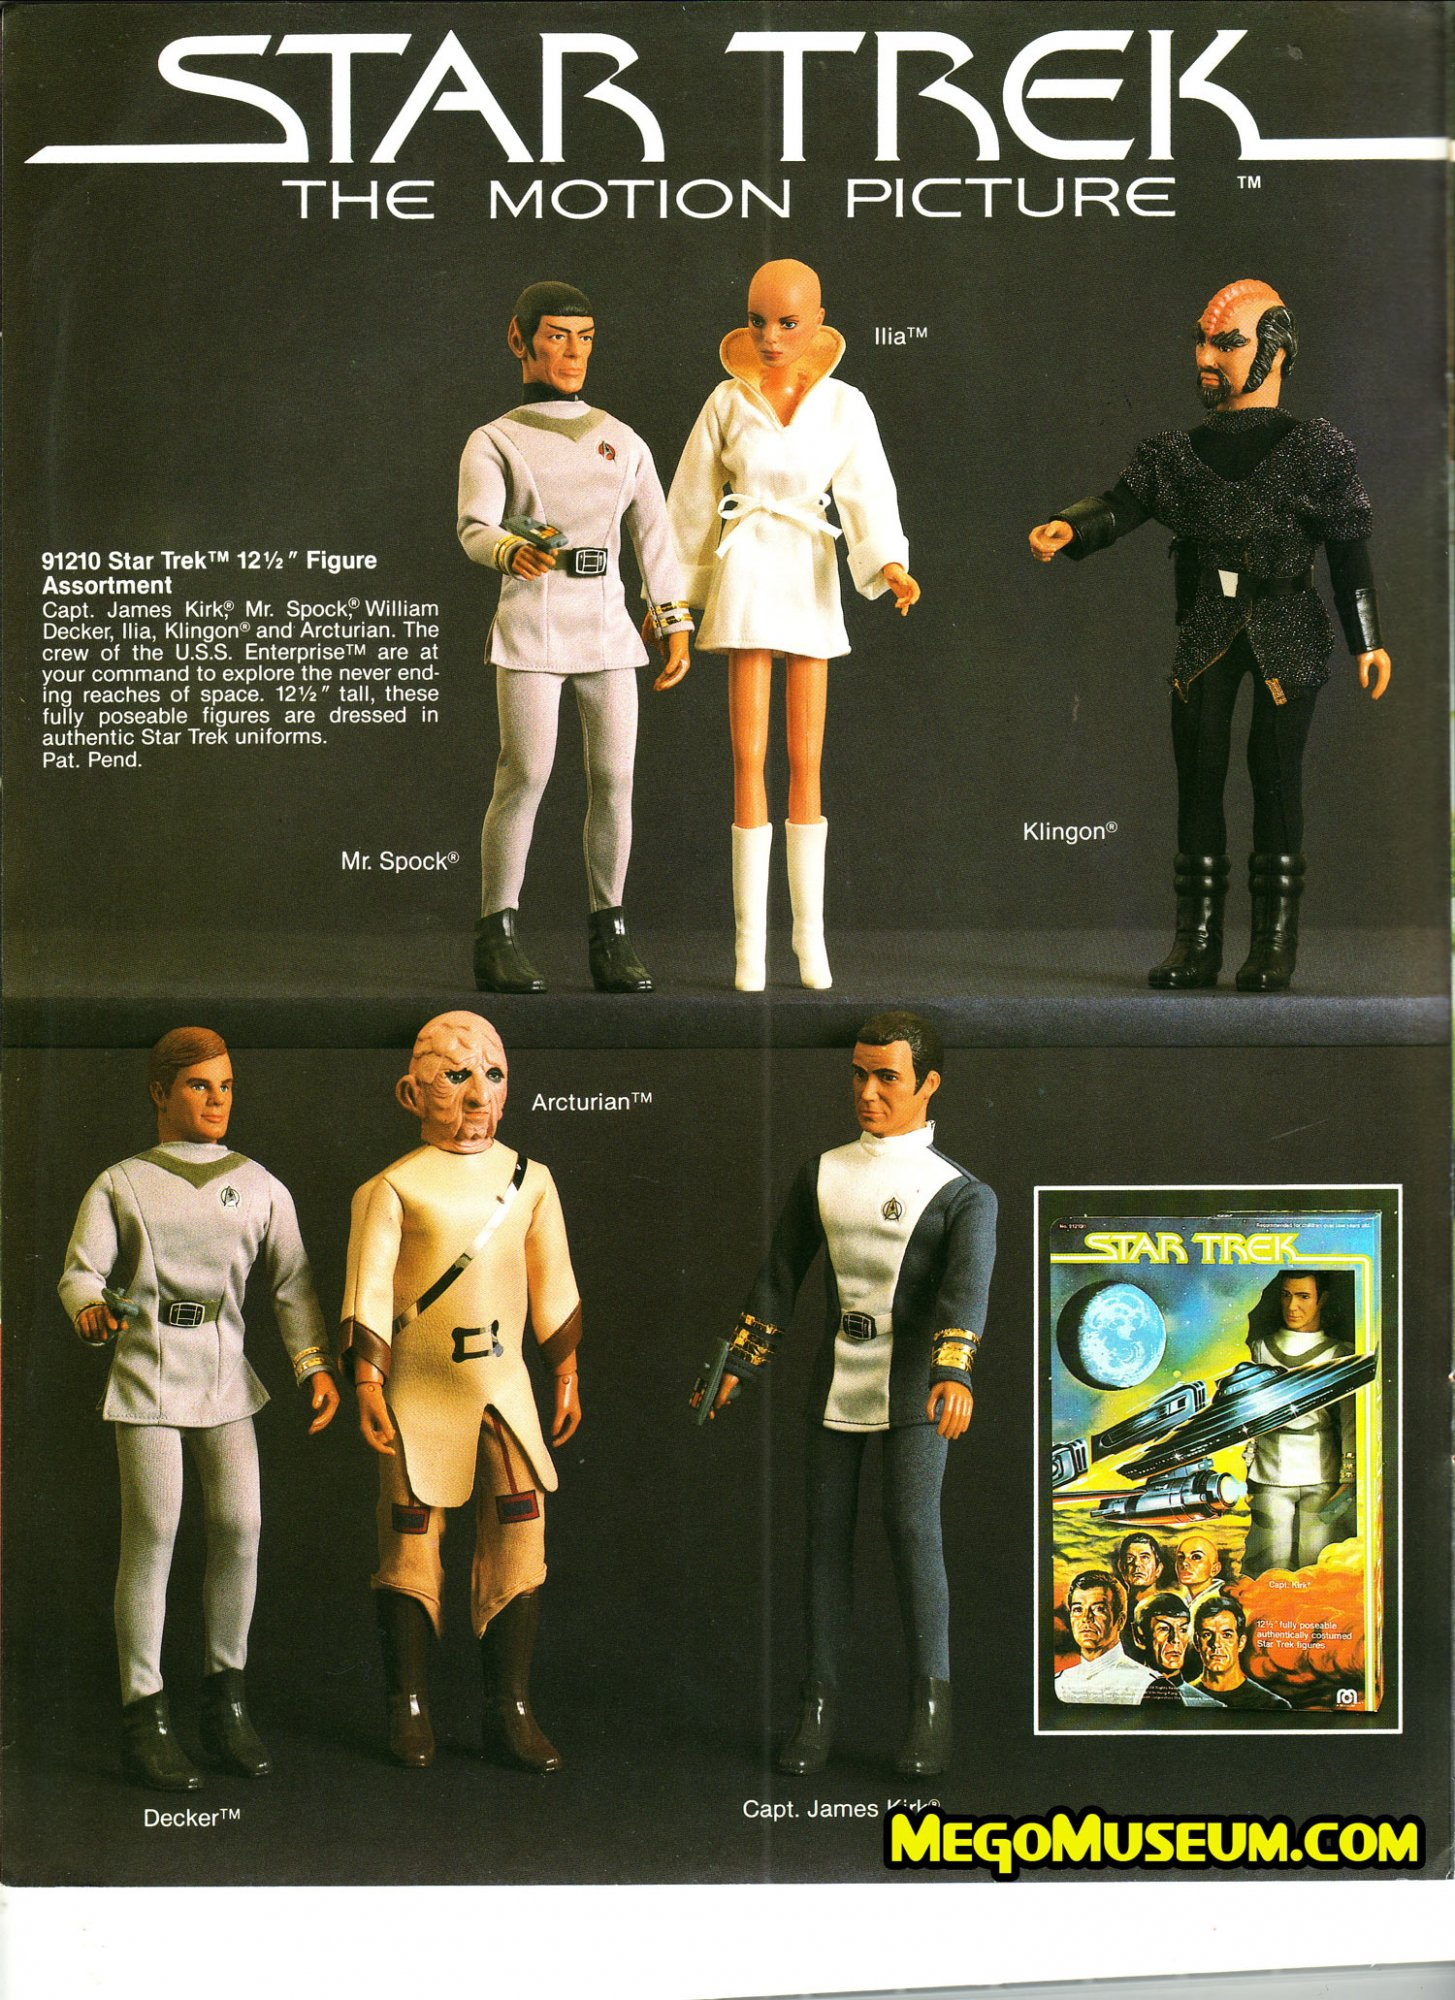 1980 Mego Spring Catalog Mego Museum Galleries